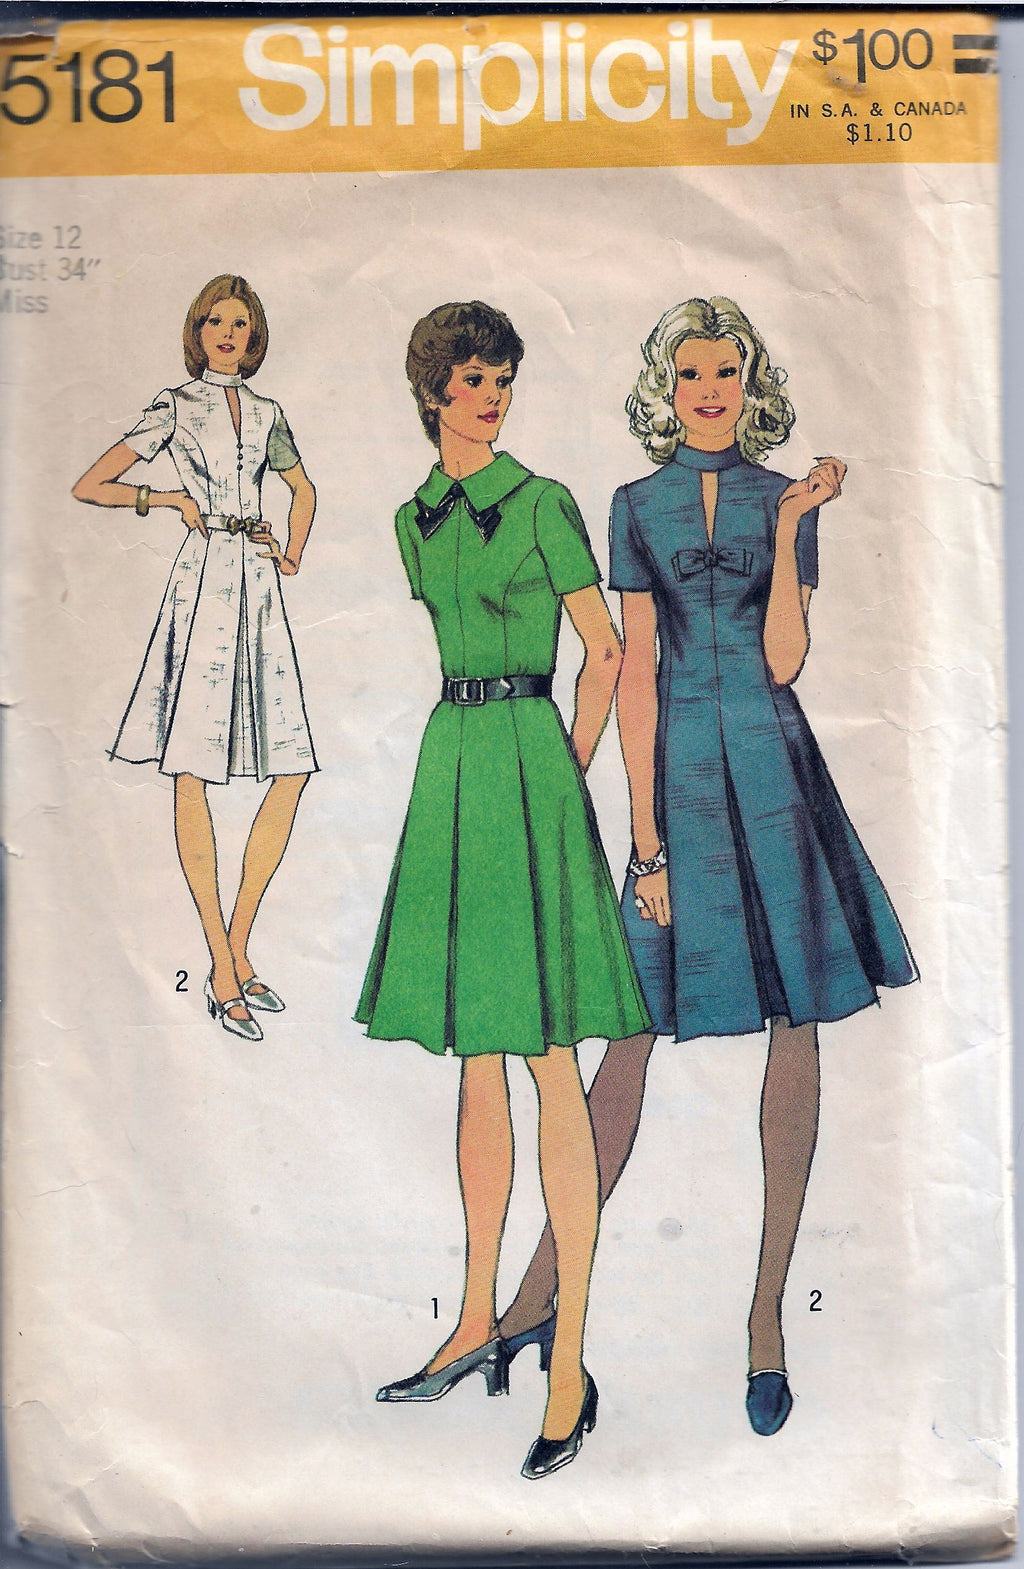 Simplicity 5181 Ladies Dress Vintage Sewing Pattern 1970s - VintageStitching - Vintage Sewing Patterns